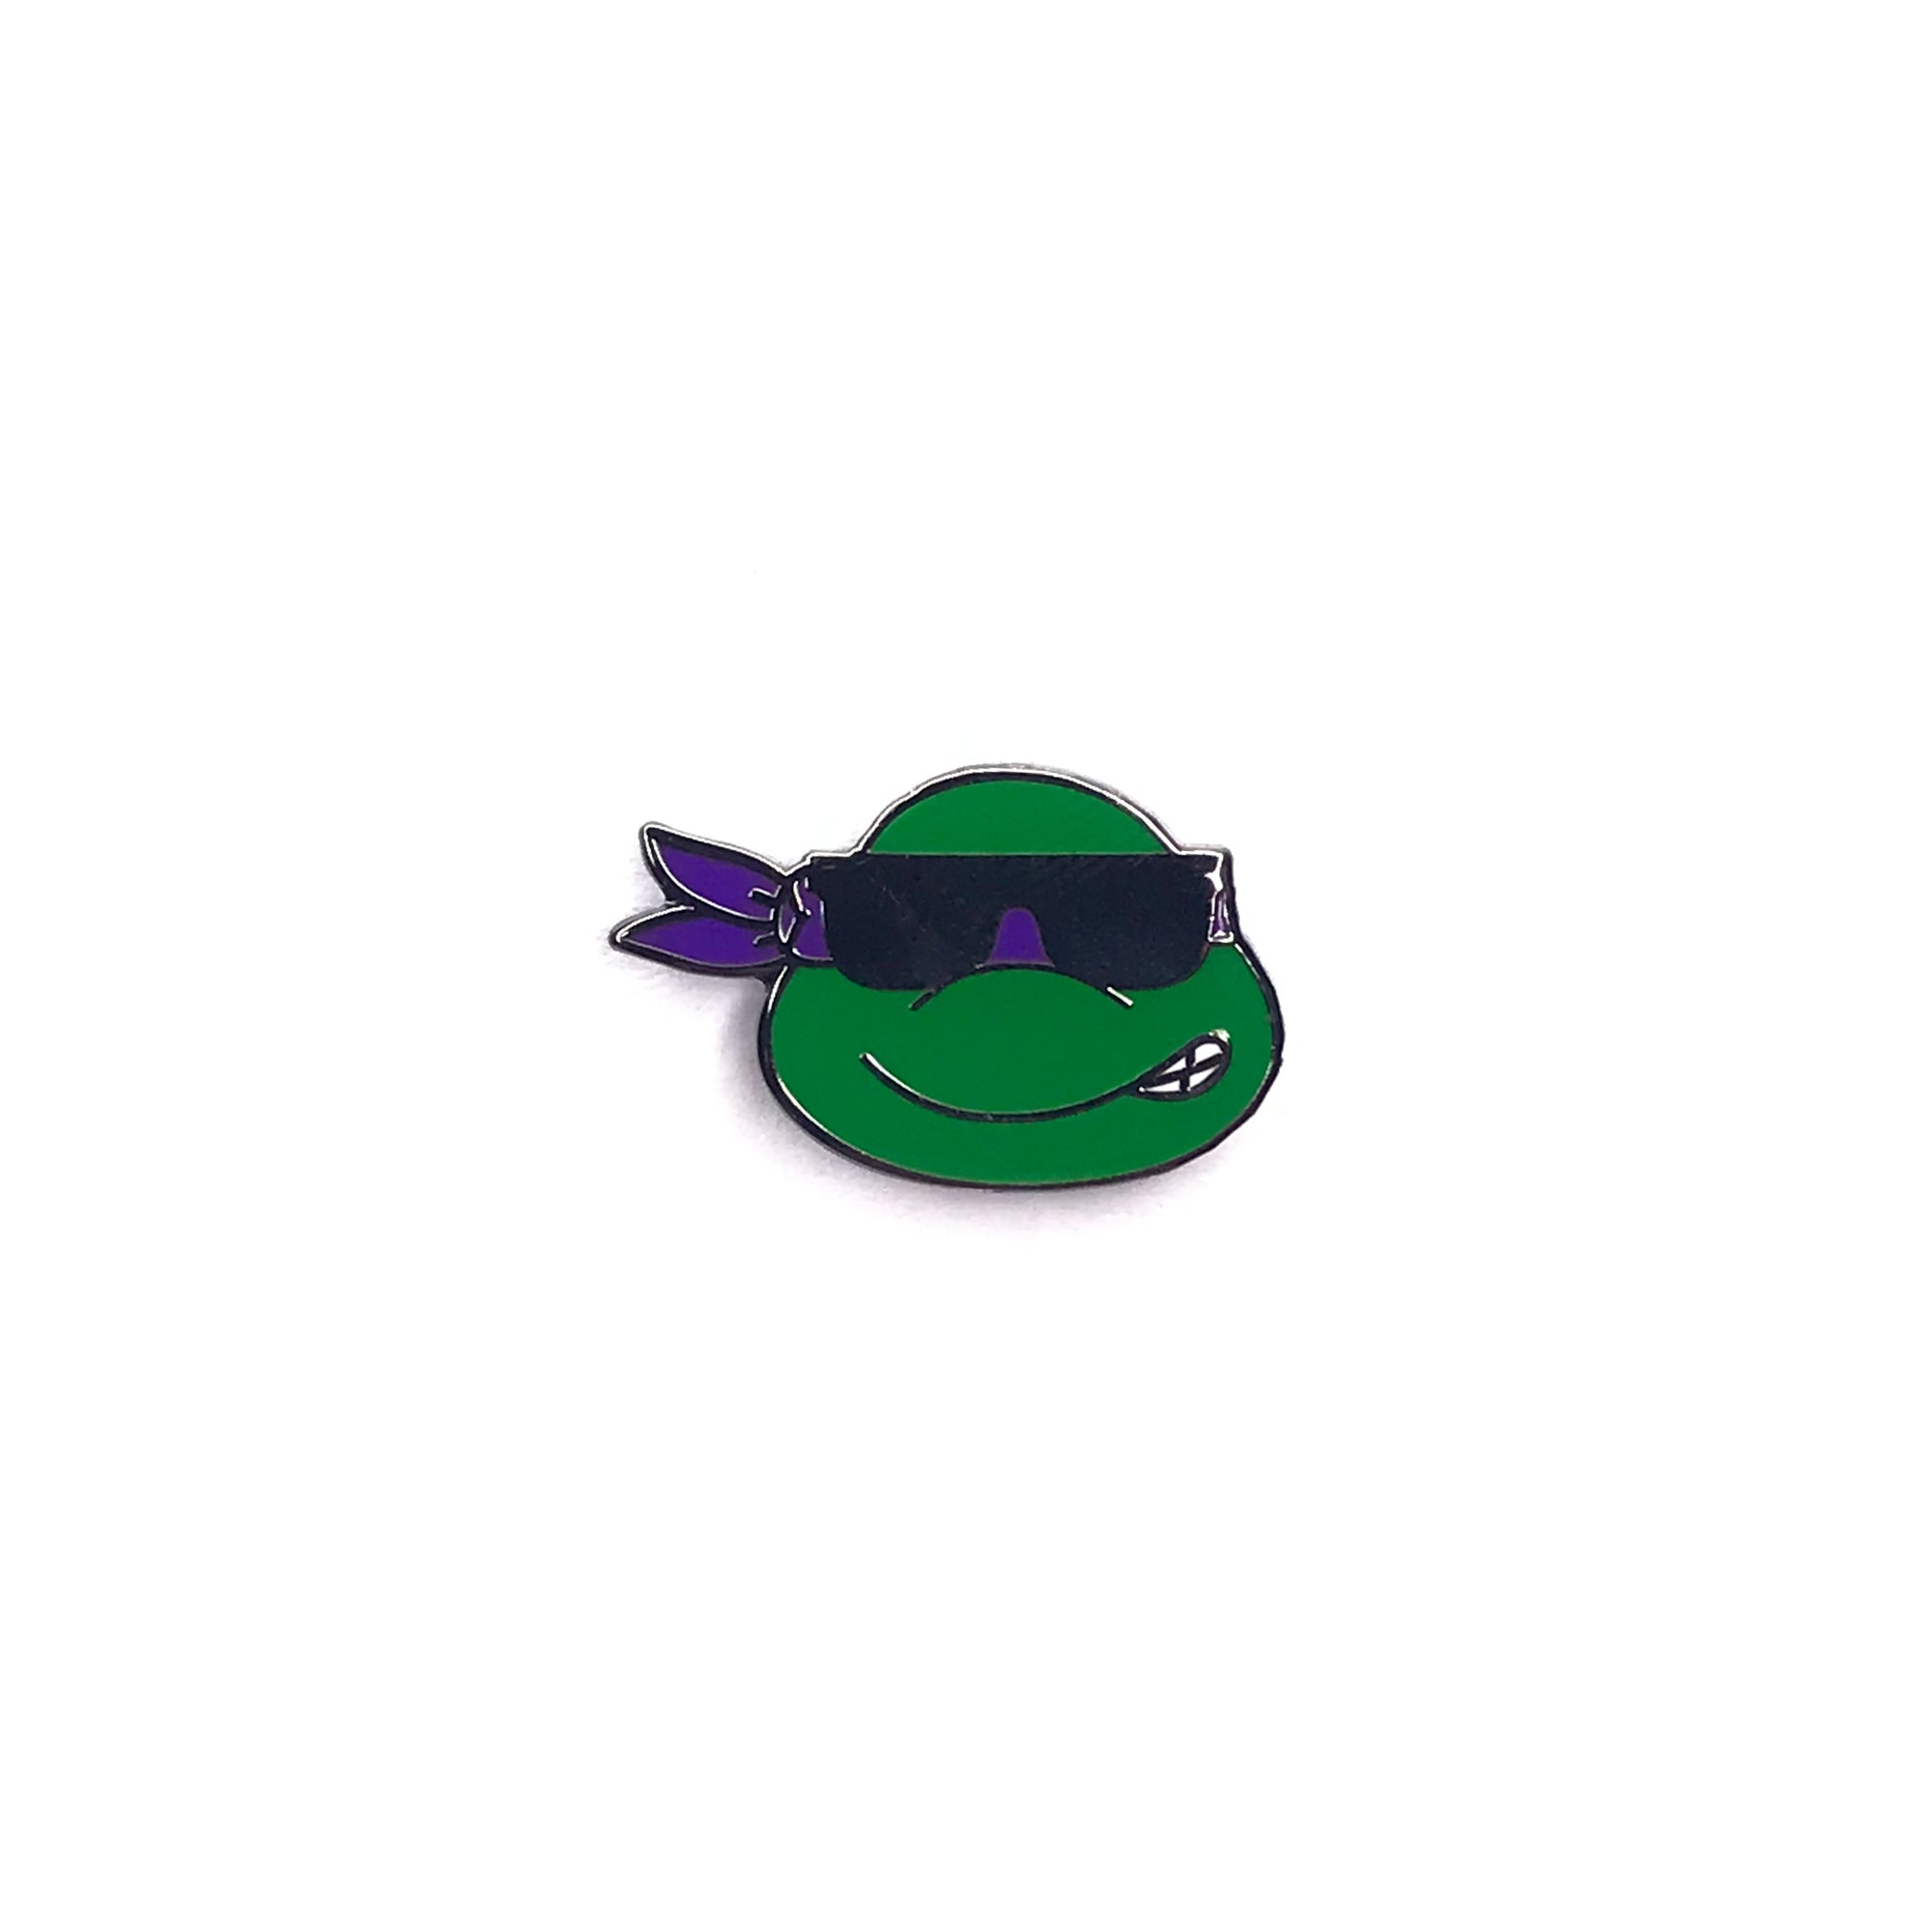 Donatello Sunglasses TMNT Emoji Pin